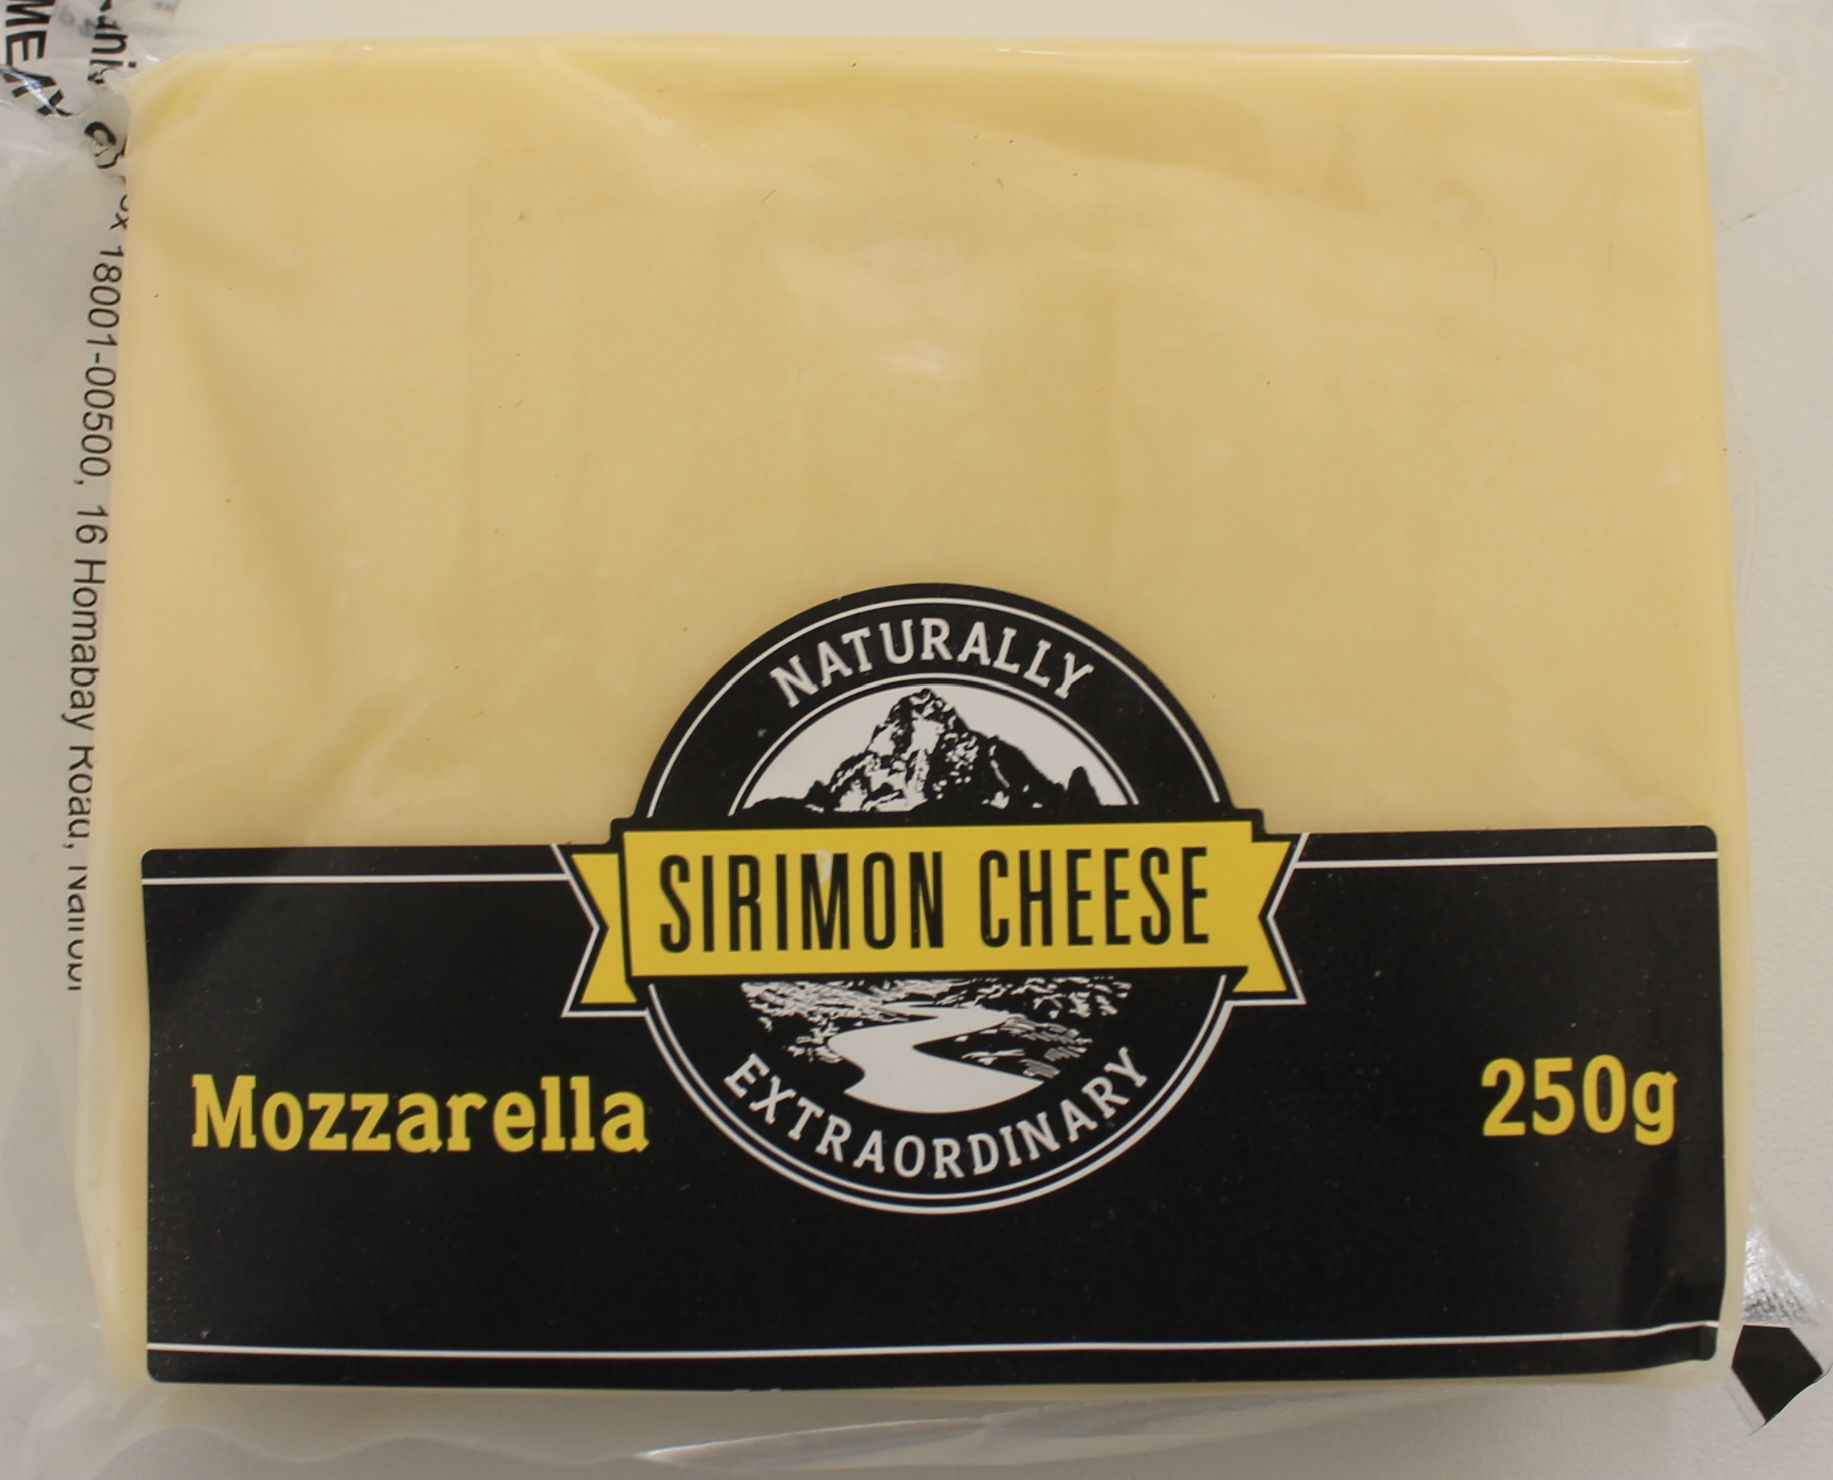 Sirimon Cheese Mozzarella 250gms